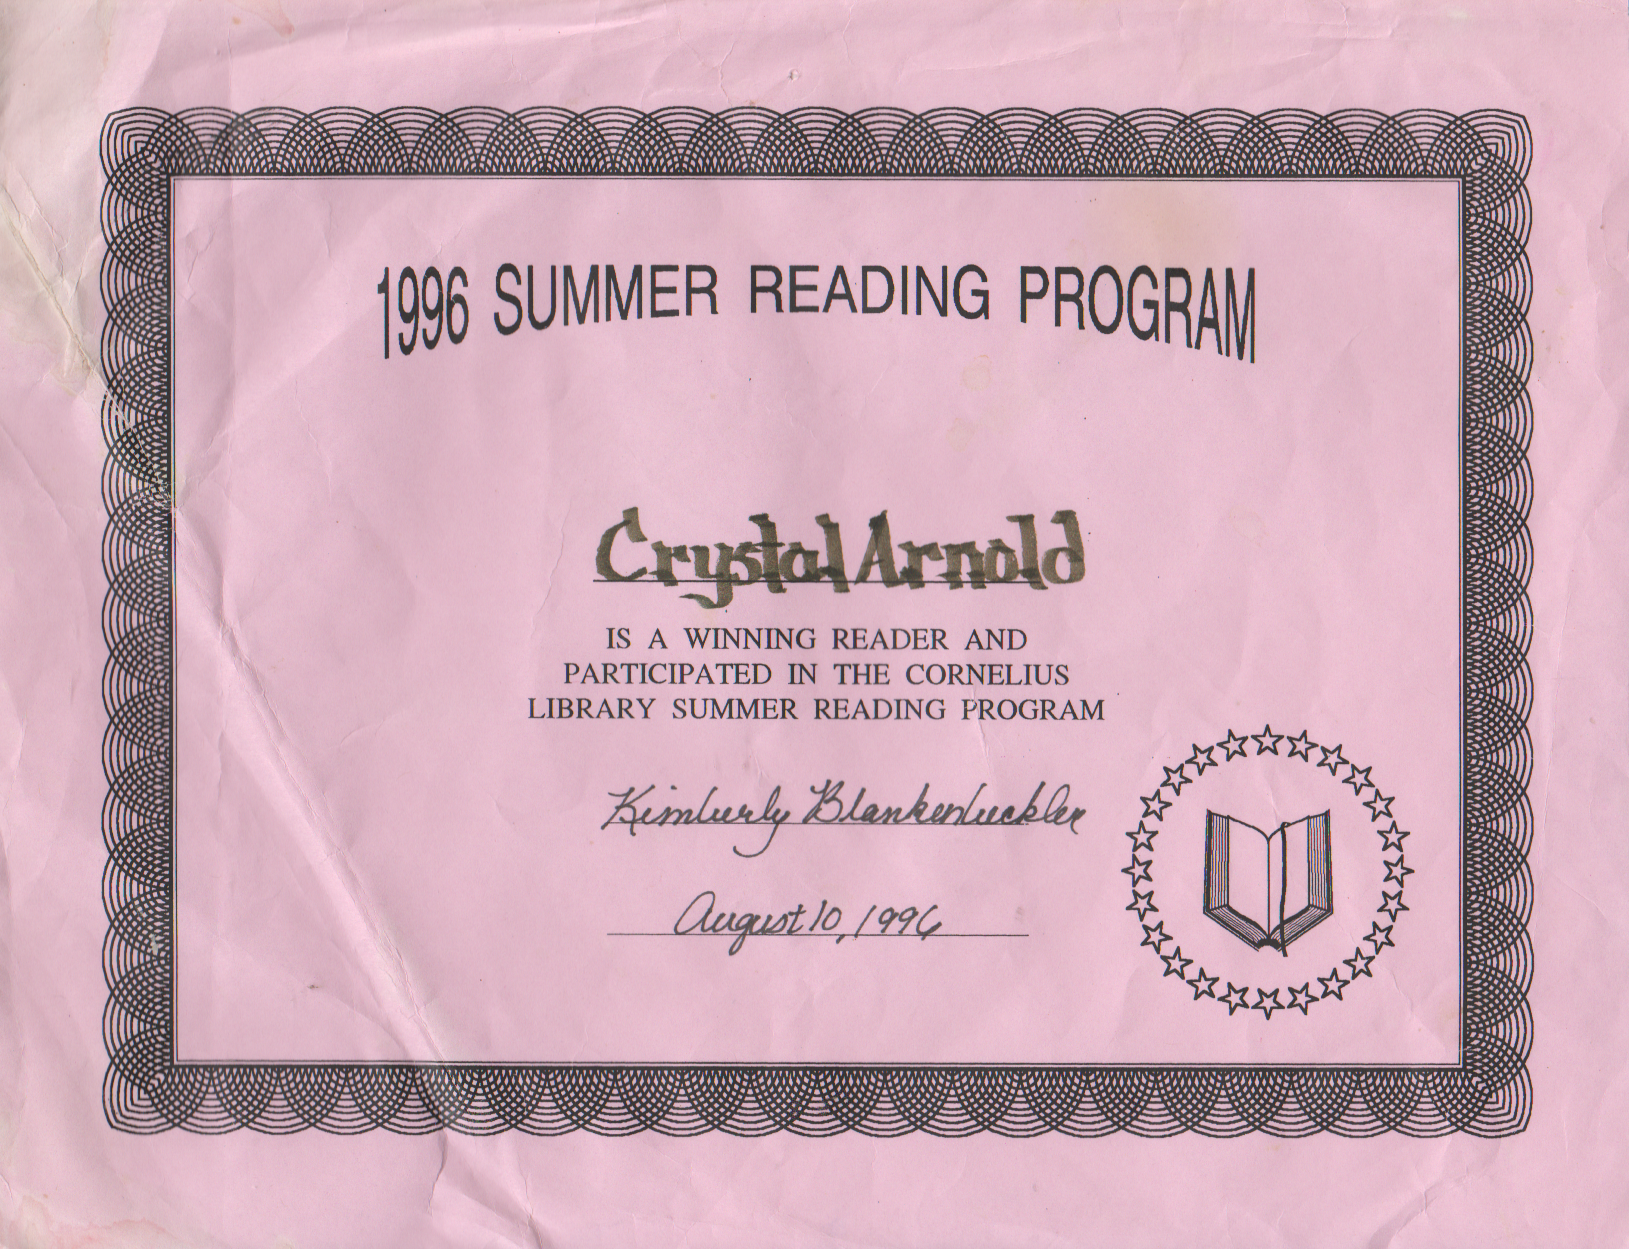 1996-08-10 - Saturday - Crystal Arnold, Summer Reading Program, Winning Reader, Participant, Certificate.png